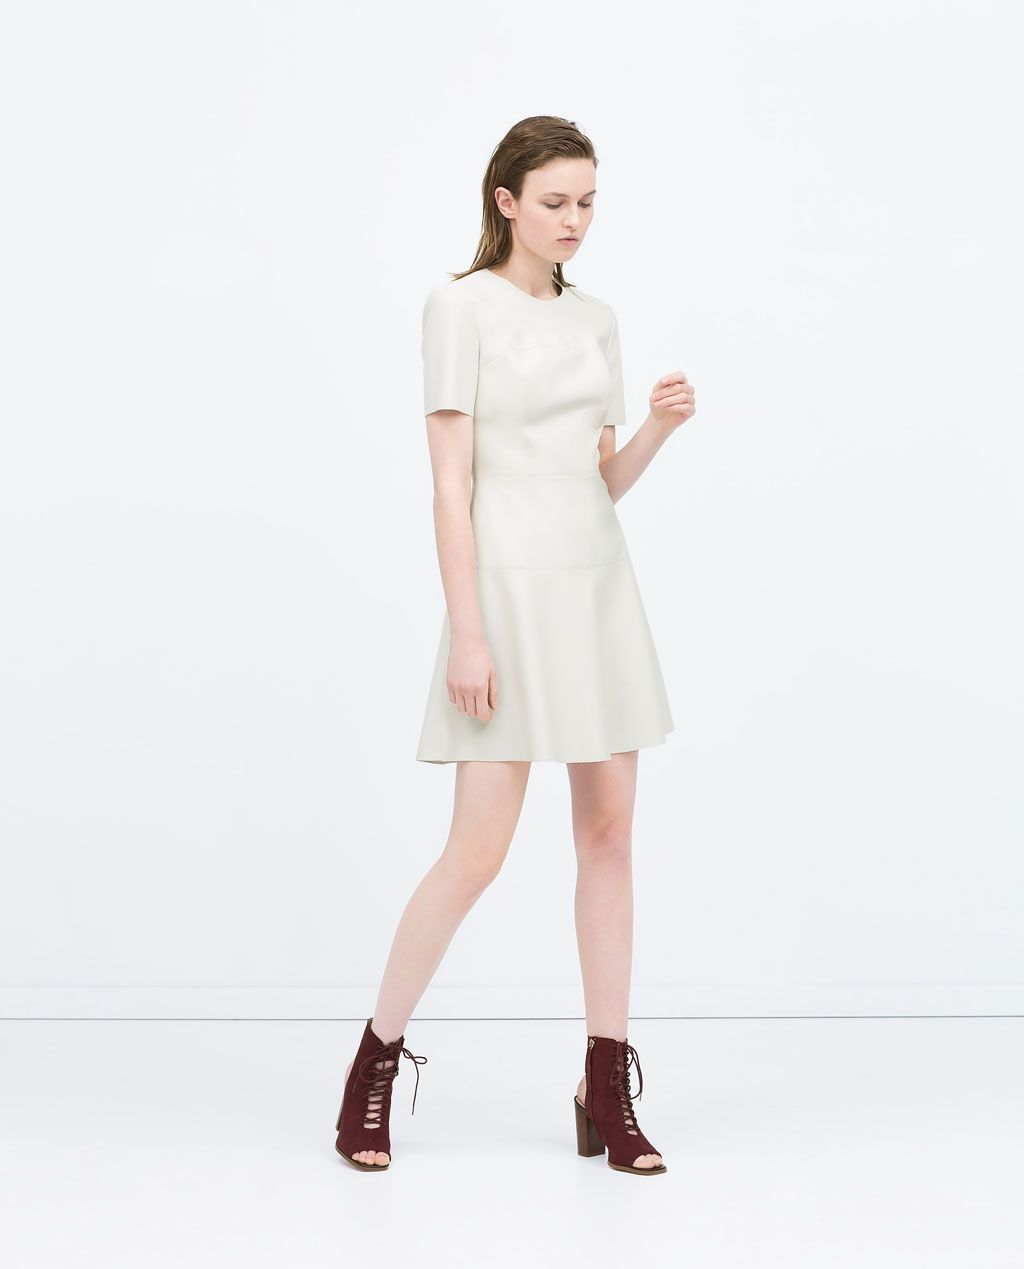 White dress at zara - Obsessing Over This Dress Simple And Ever So Chic Zara Faux Leather Dress With